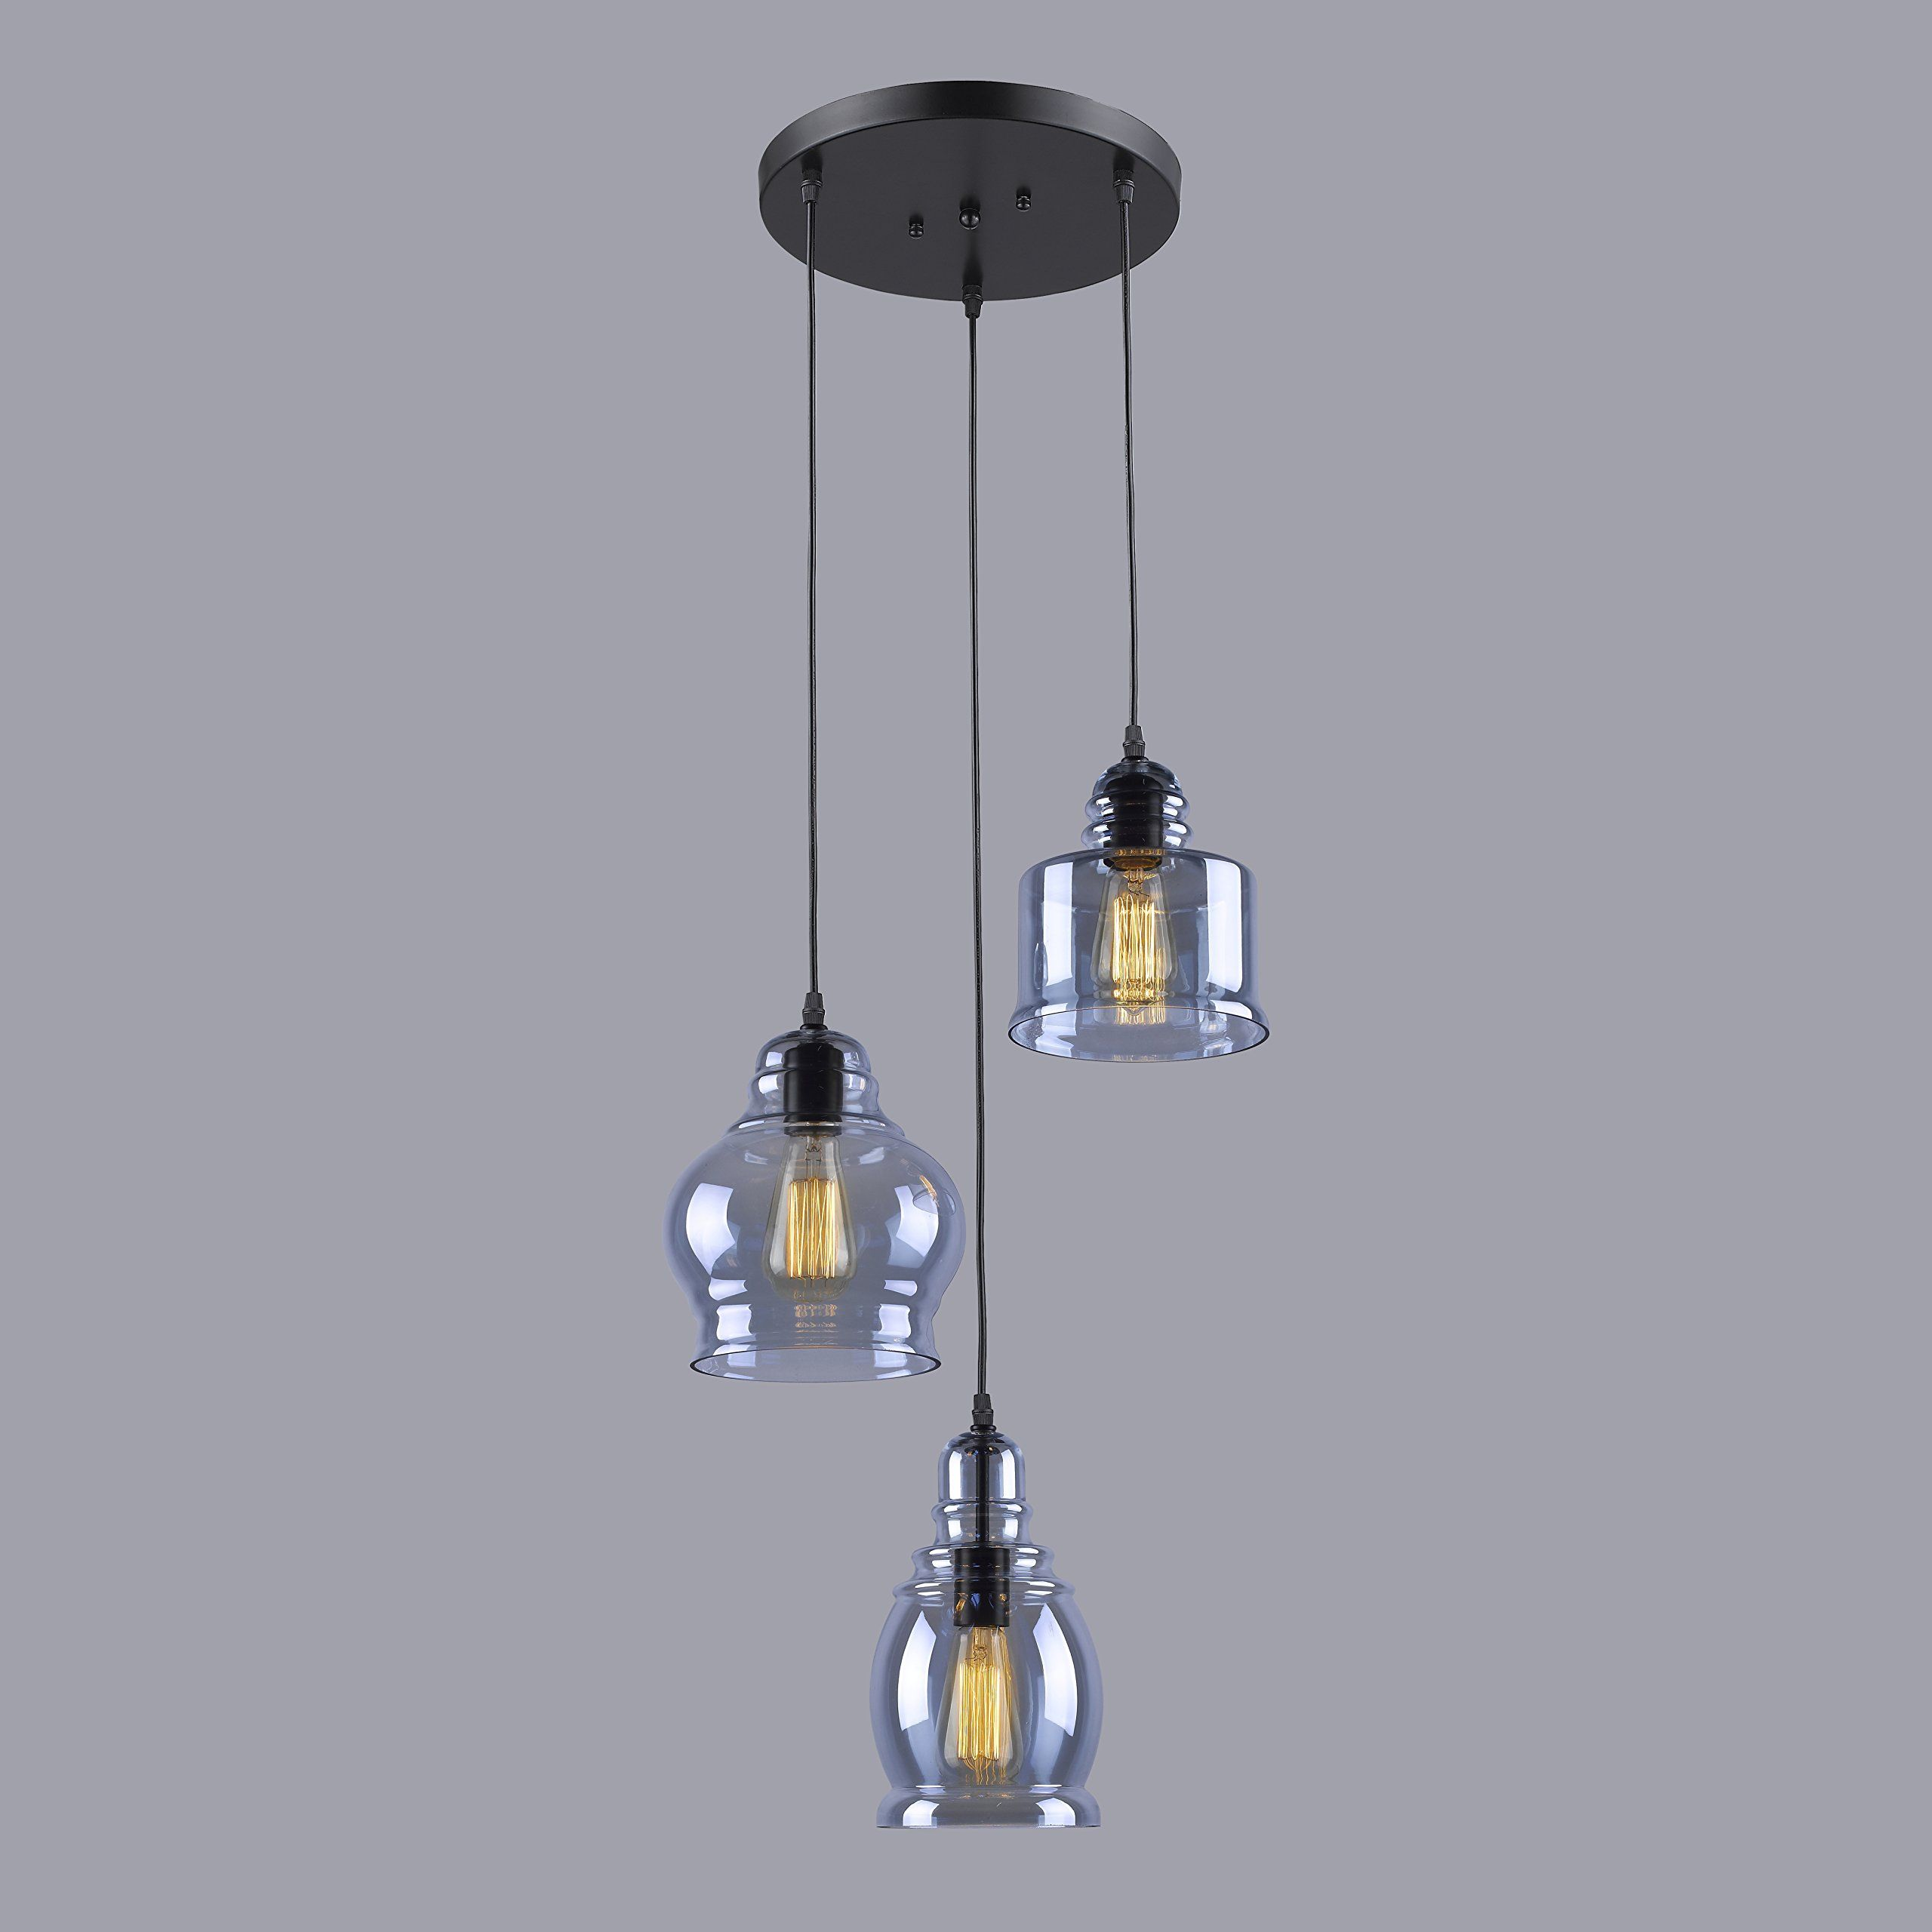 Claxy Ecopower Vintage Kitchen Linear Island Glass Chandelier Pendant Lighting